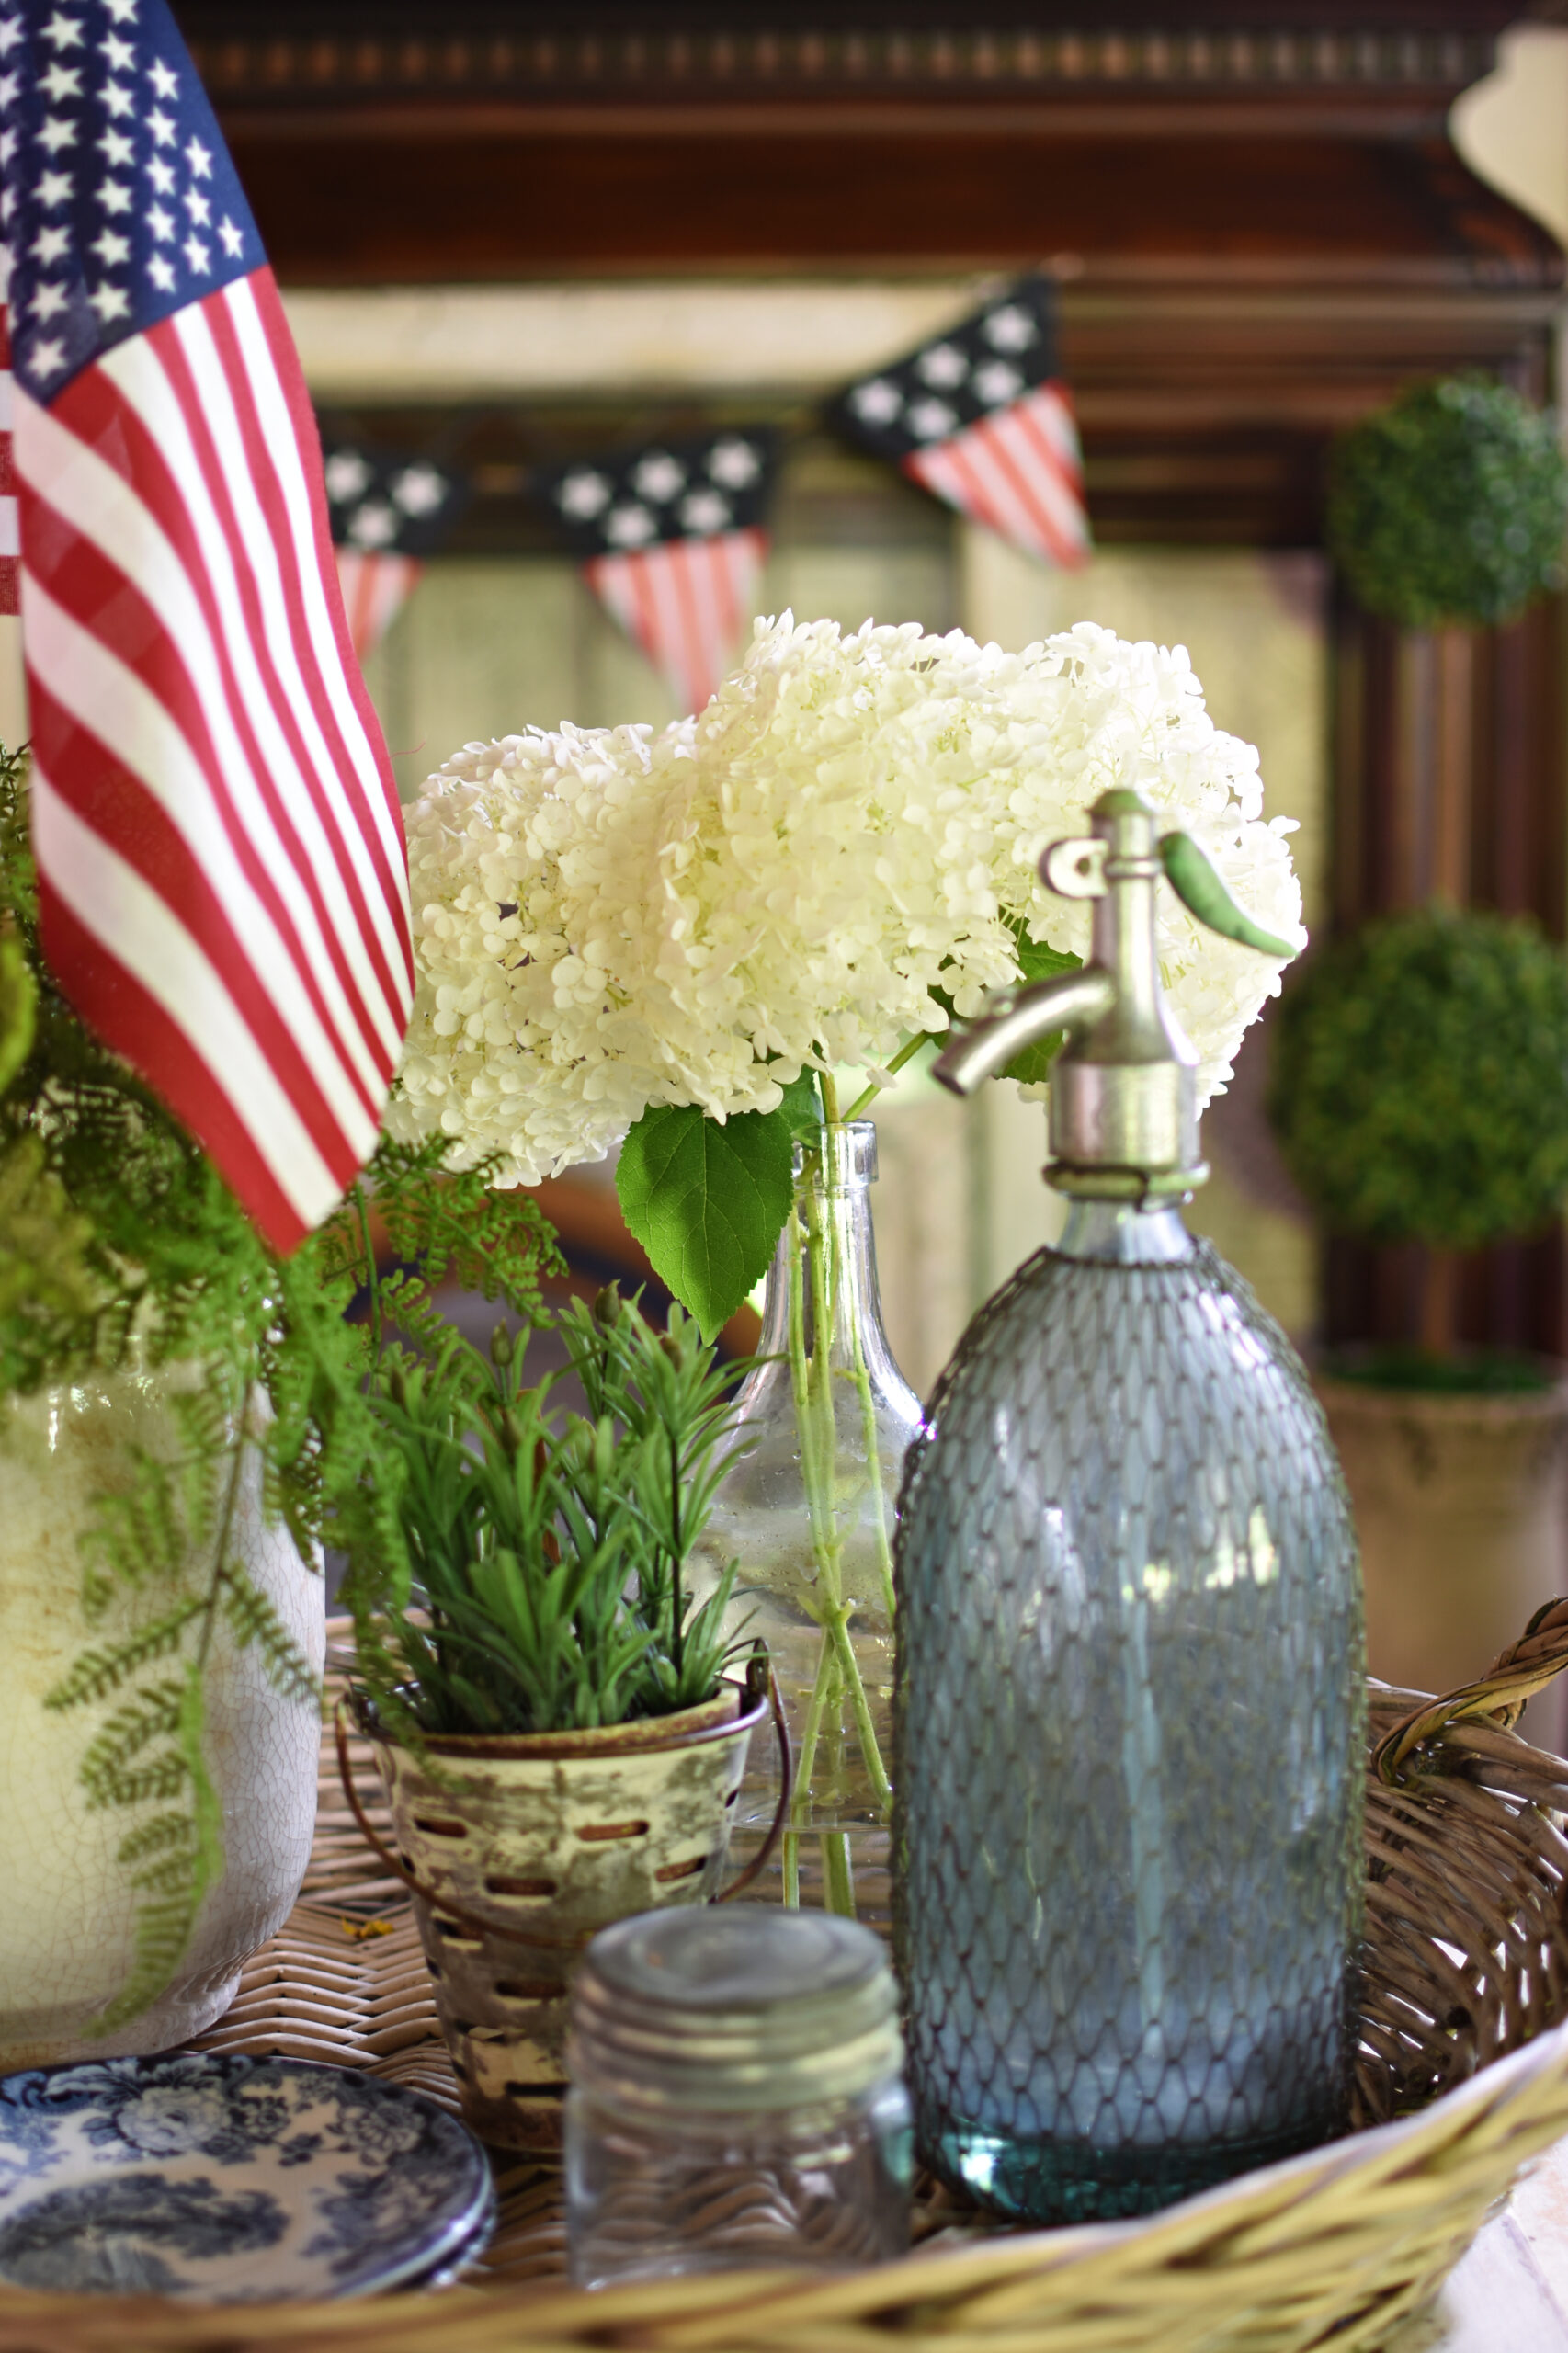 patriotic decor demijohn with hydrangeas French seltzer bottle